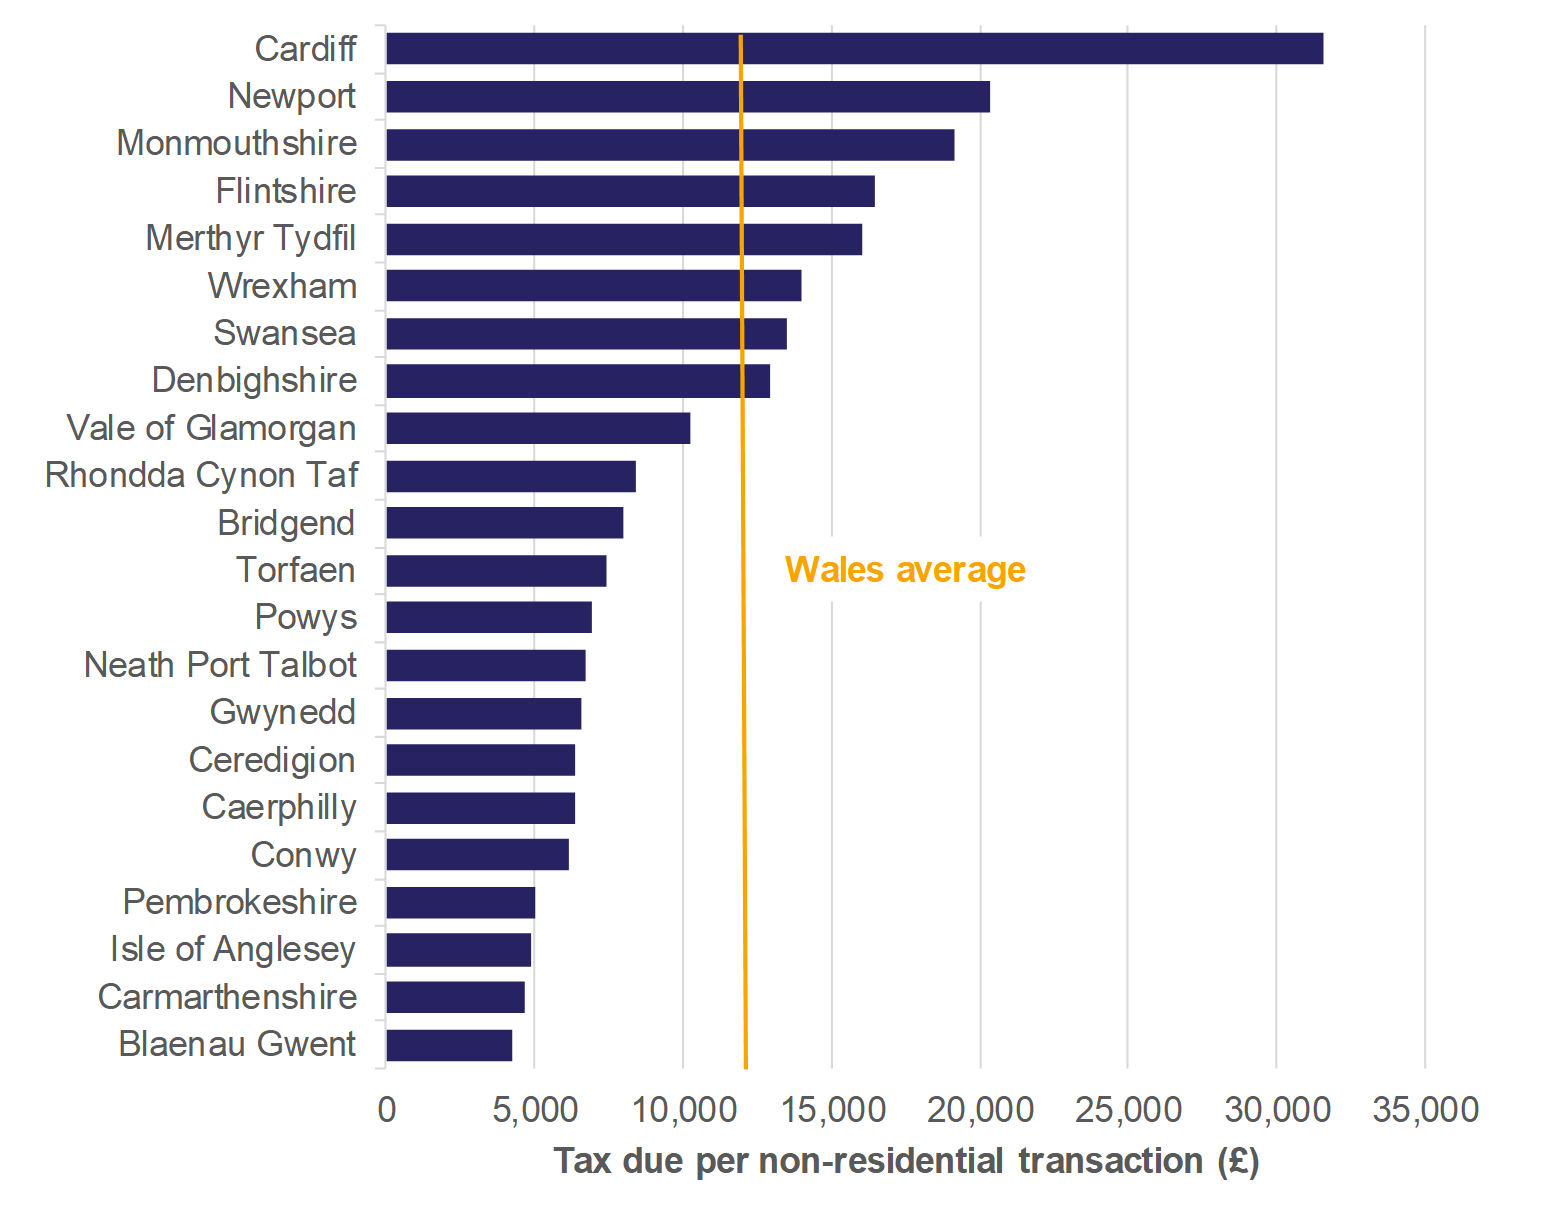 Figure 8.2 shows for non-residential transactions: the amount of tax due per transaction for all local authorities and a Wales average.